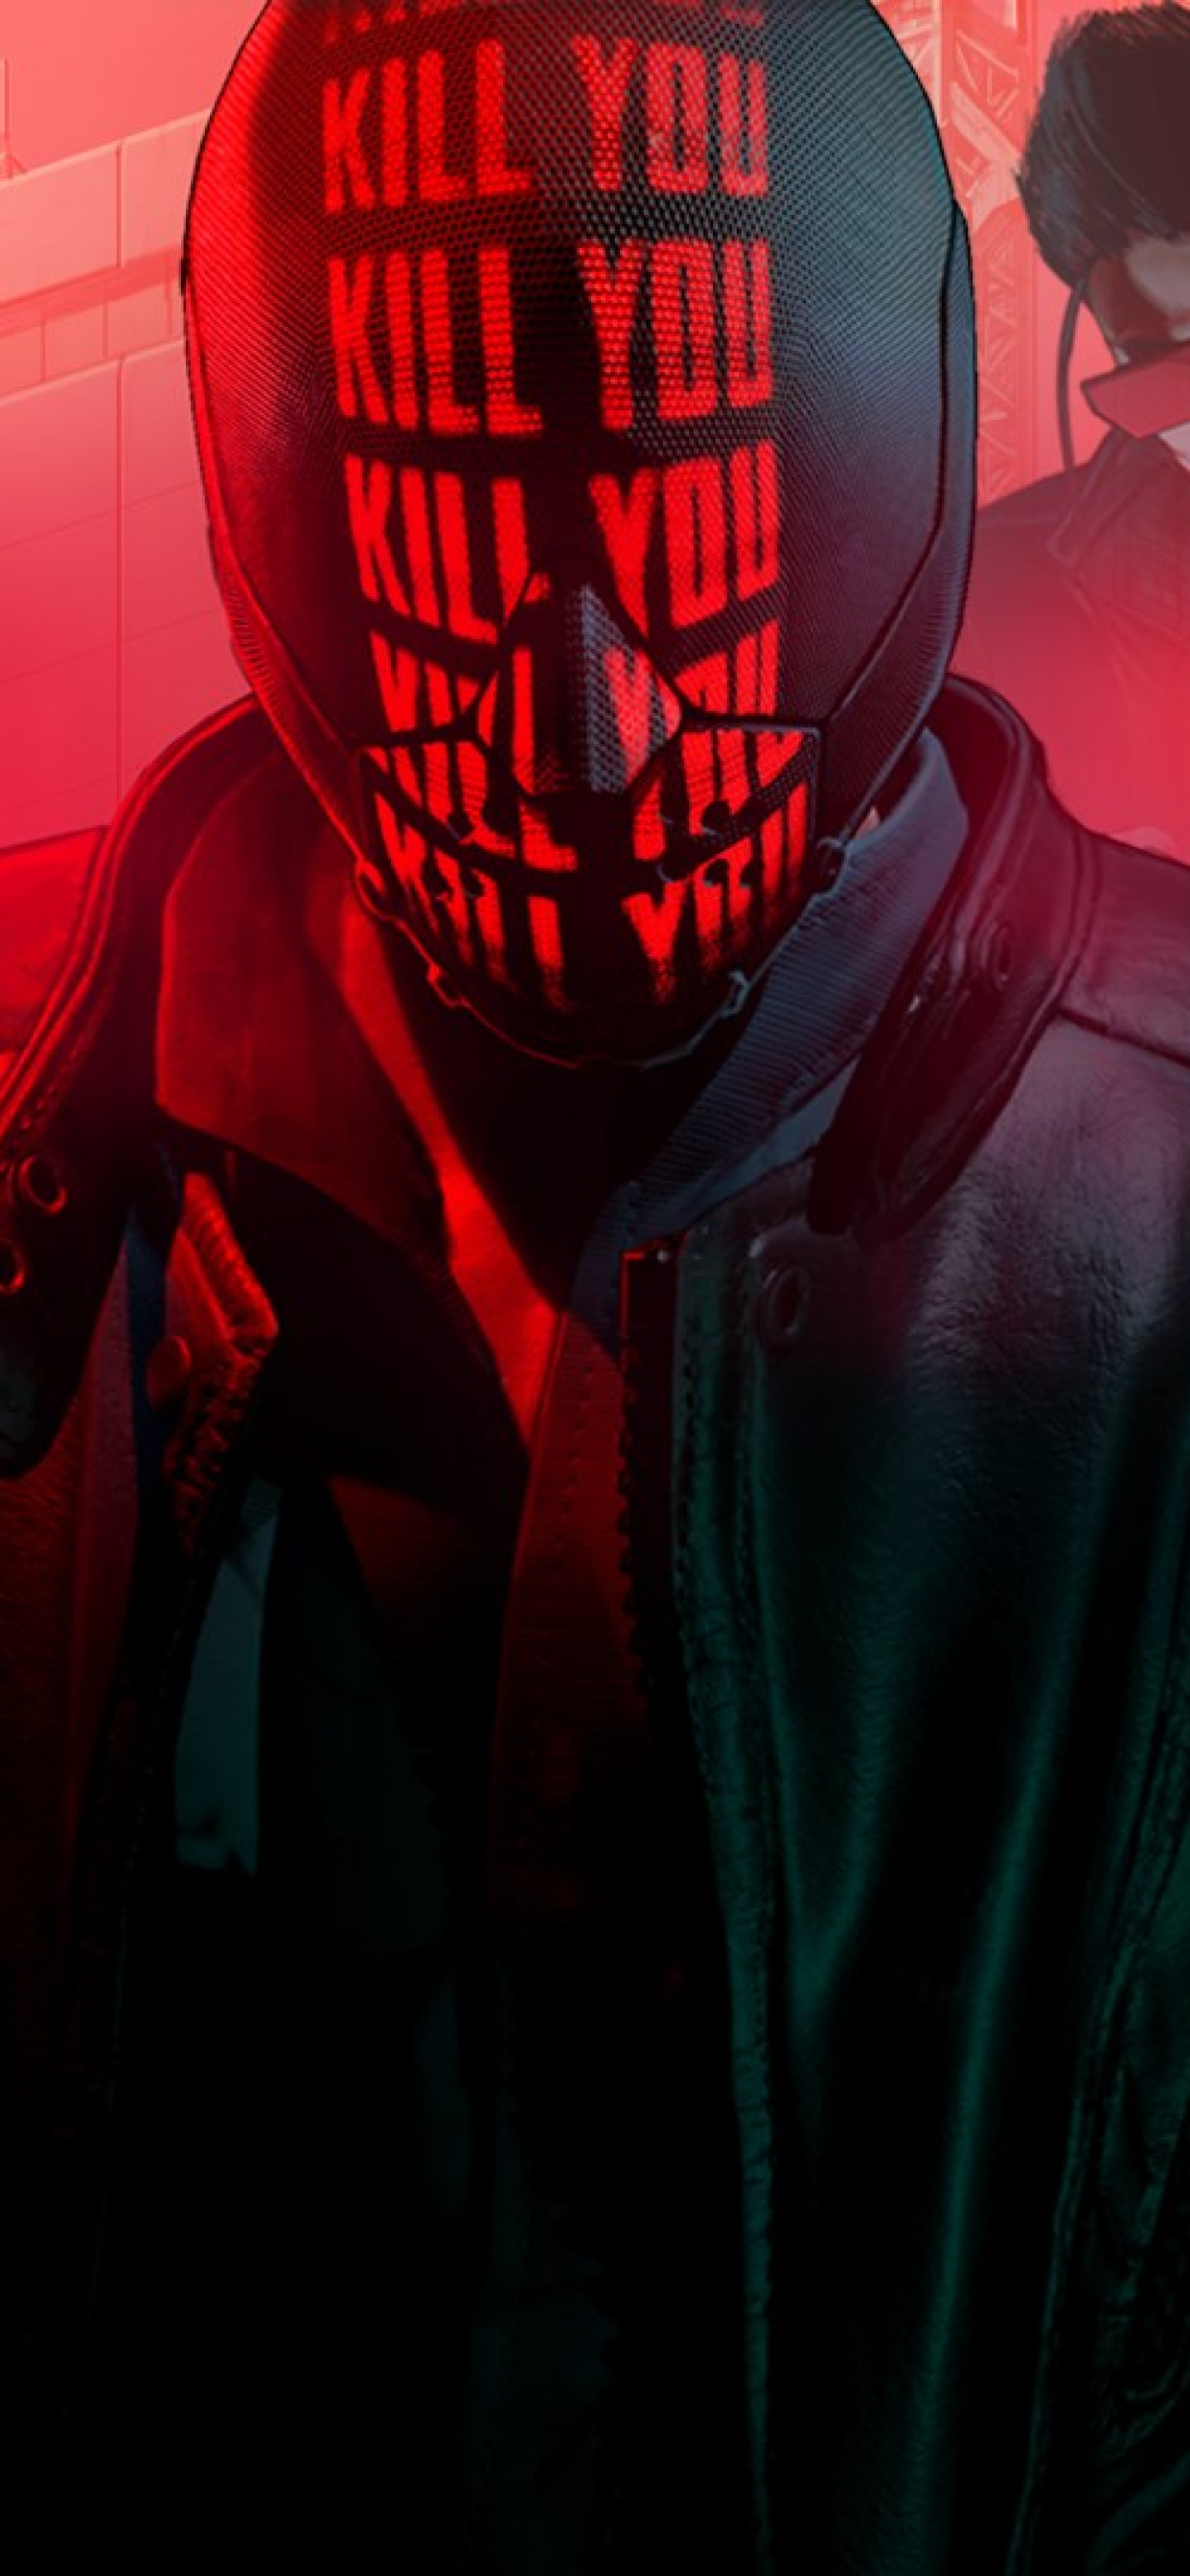 1242x2688 Ruiner Game Iphone Xs Max Wallpaper Hd Games 4k Wallpapers Images Photos And Background